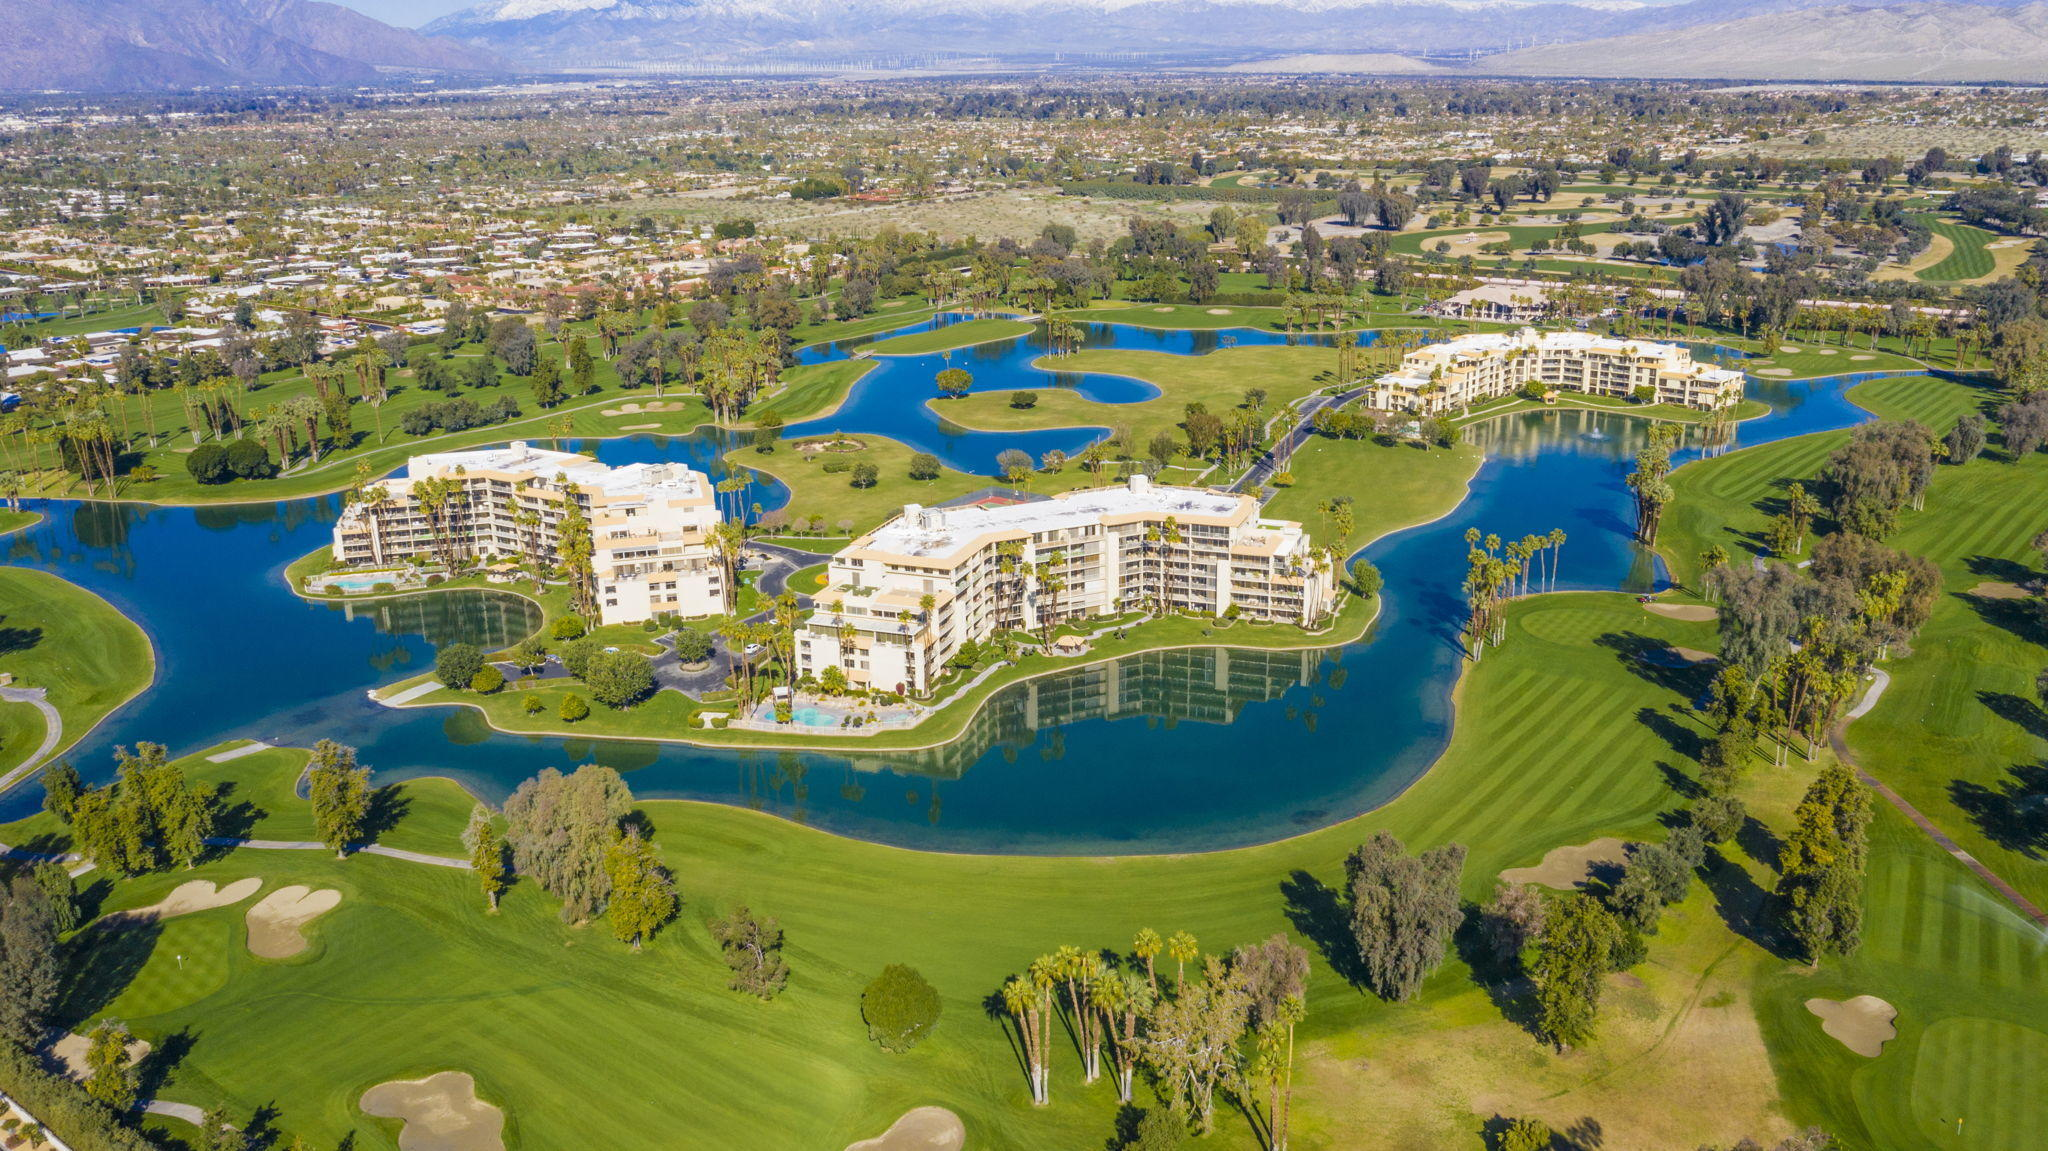 Very rare 3-bedroom end unit. You'll enjoy serene lake front views from floor-to-ceiling windows from every room in this spacious home.   Desert Island is a unique high-rise condominium community nestled on a lush green 25-acre island, surrounded by a sparkling lake and immaculate private 18-hole championship golf course. Most units average 2,000 square feet in size and offer spacious covered terraces with extraordinary views of the mountains, lake and golf course. Homeowners enjoy the beauty of the open grounds with walking paths, benches, fruit trees, tennis courts, heated swimming pools and spas, pedal boats, fishing and 24-hour guard gated entry.